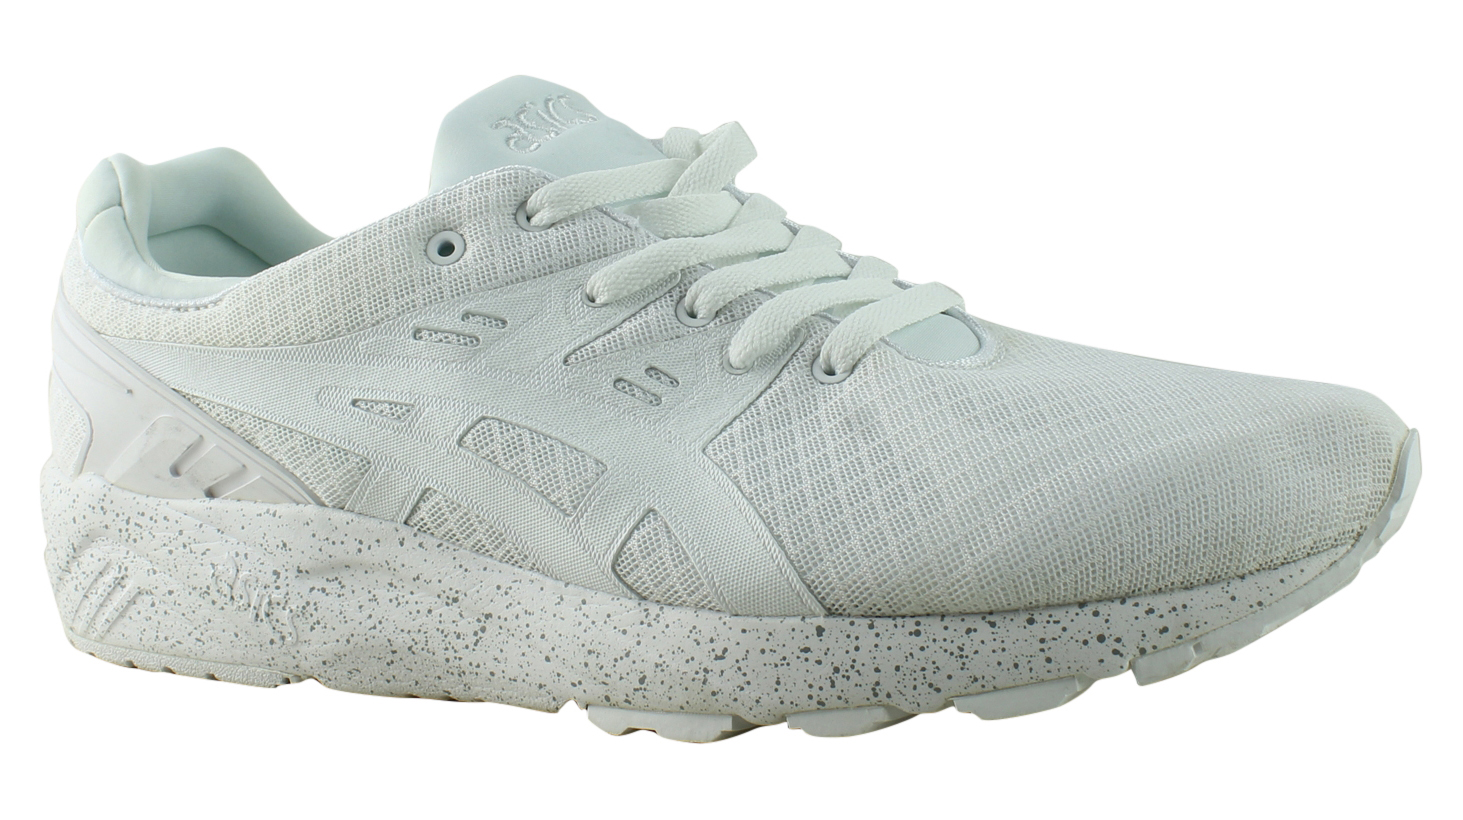 ASICS Mens Gel Kayano Trainer Trainer Kayano Evo White/White Running Shoes Size 12 (352072) f5065a